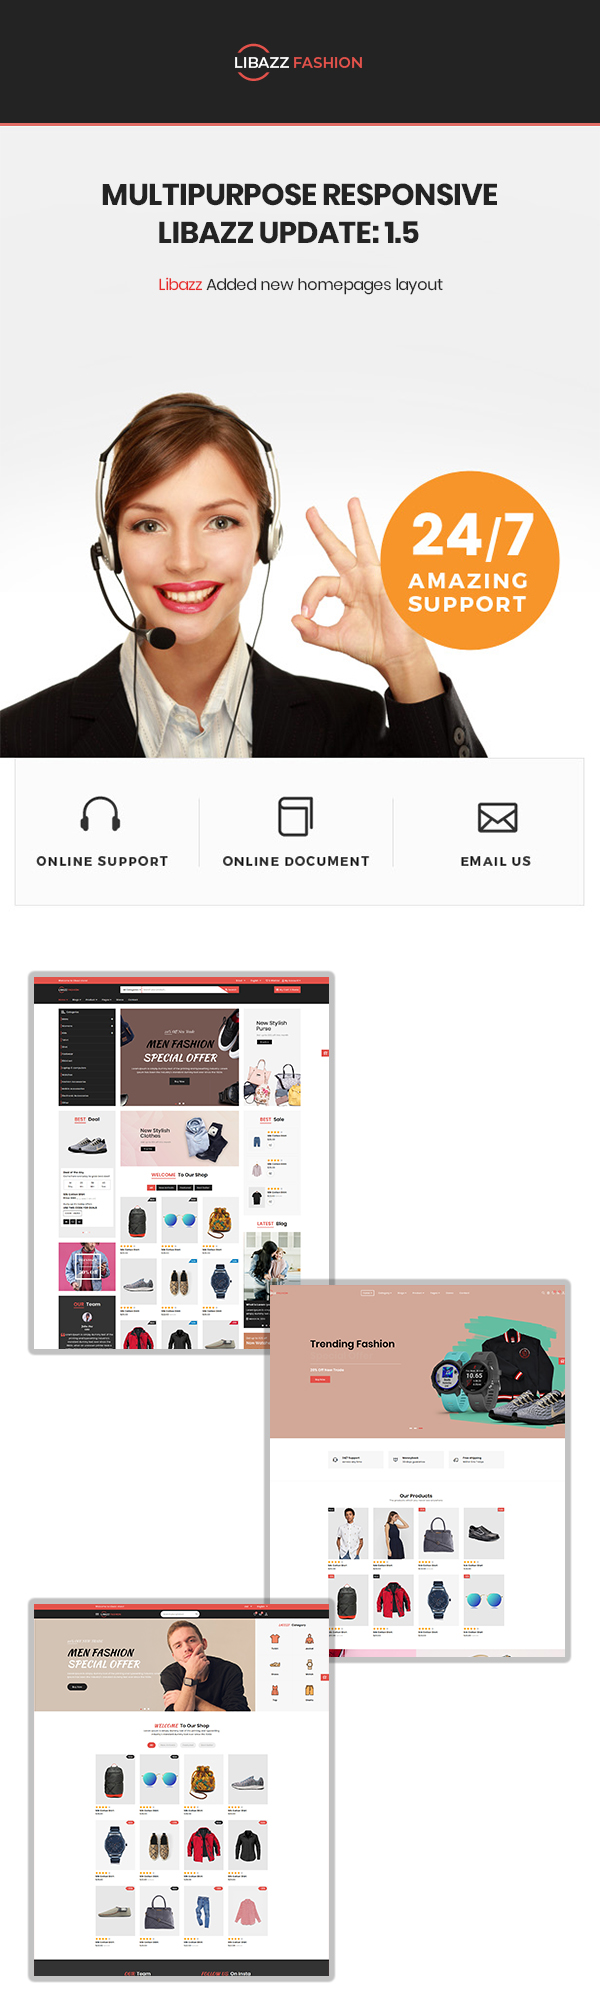 Libazz - The Responsive Bootstrap 4 Multipurpose eCommerce Template - 2